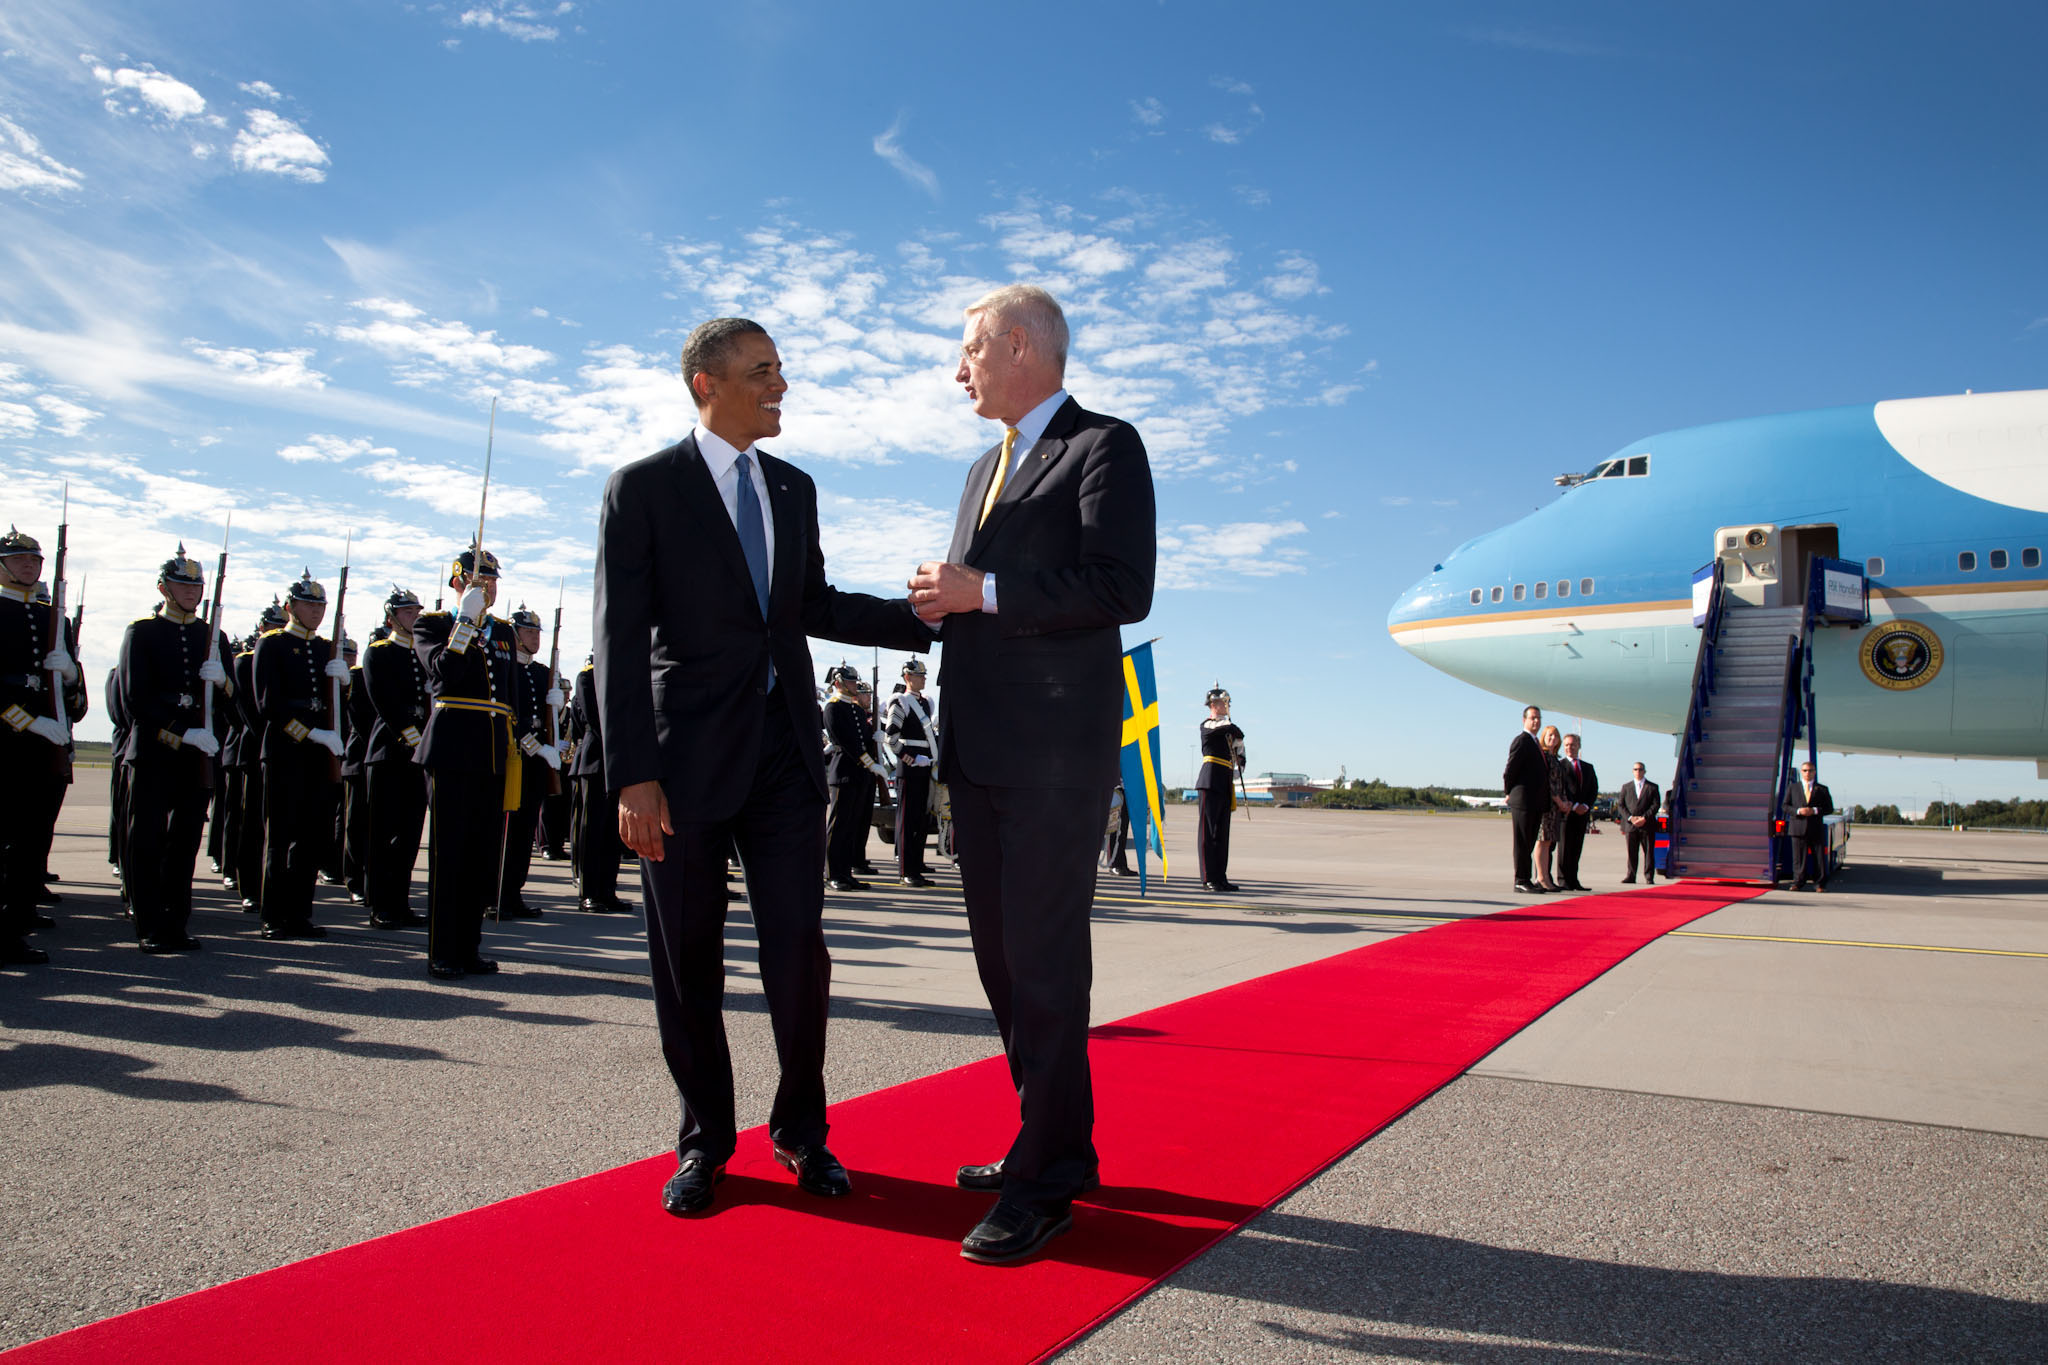 President Barack Obama talks with Foreign Minister Carl Bildt of Sweden during the arrival ceremony at Stockholm-Arlanda International Airport in Sweden